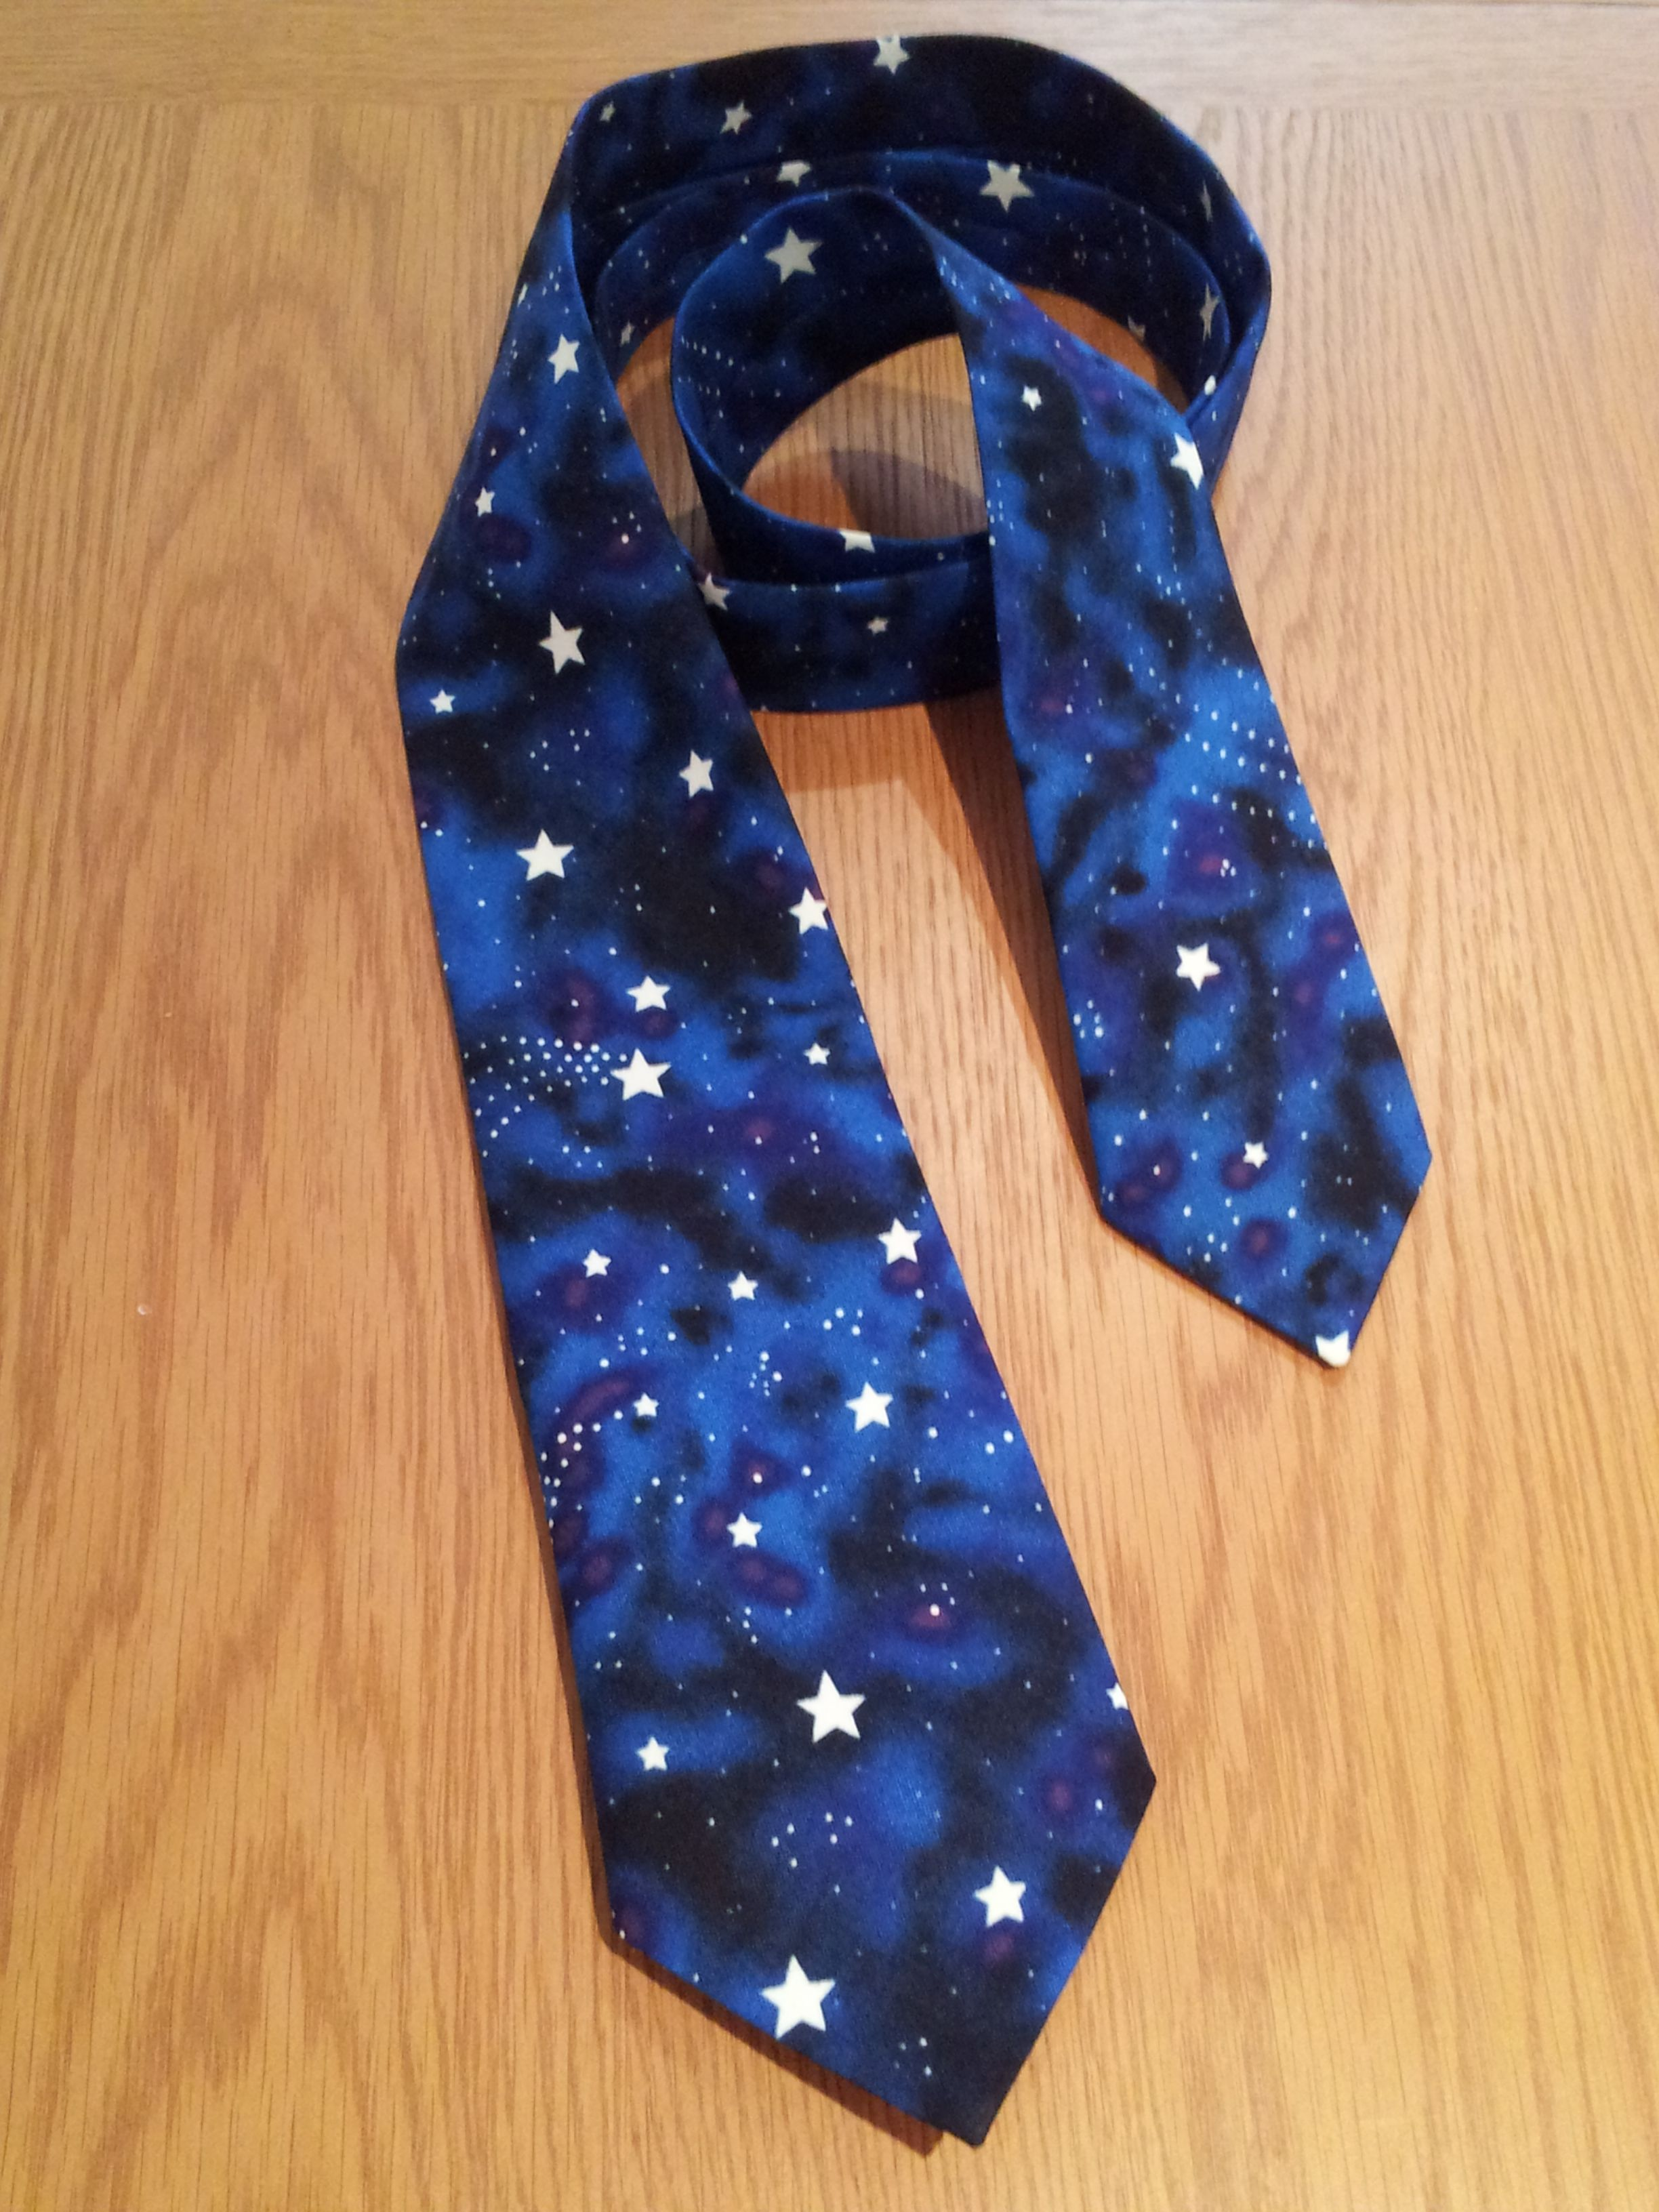 Handmade glow in the dark star tie